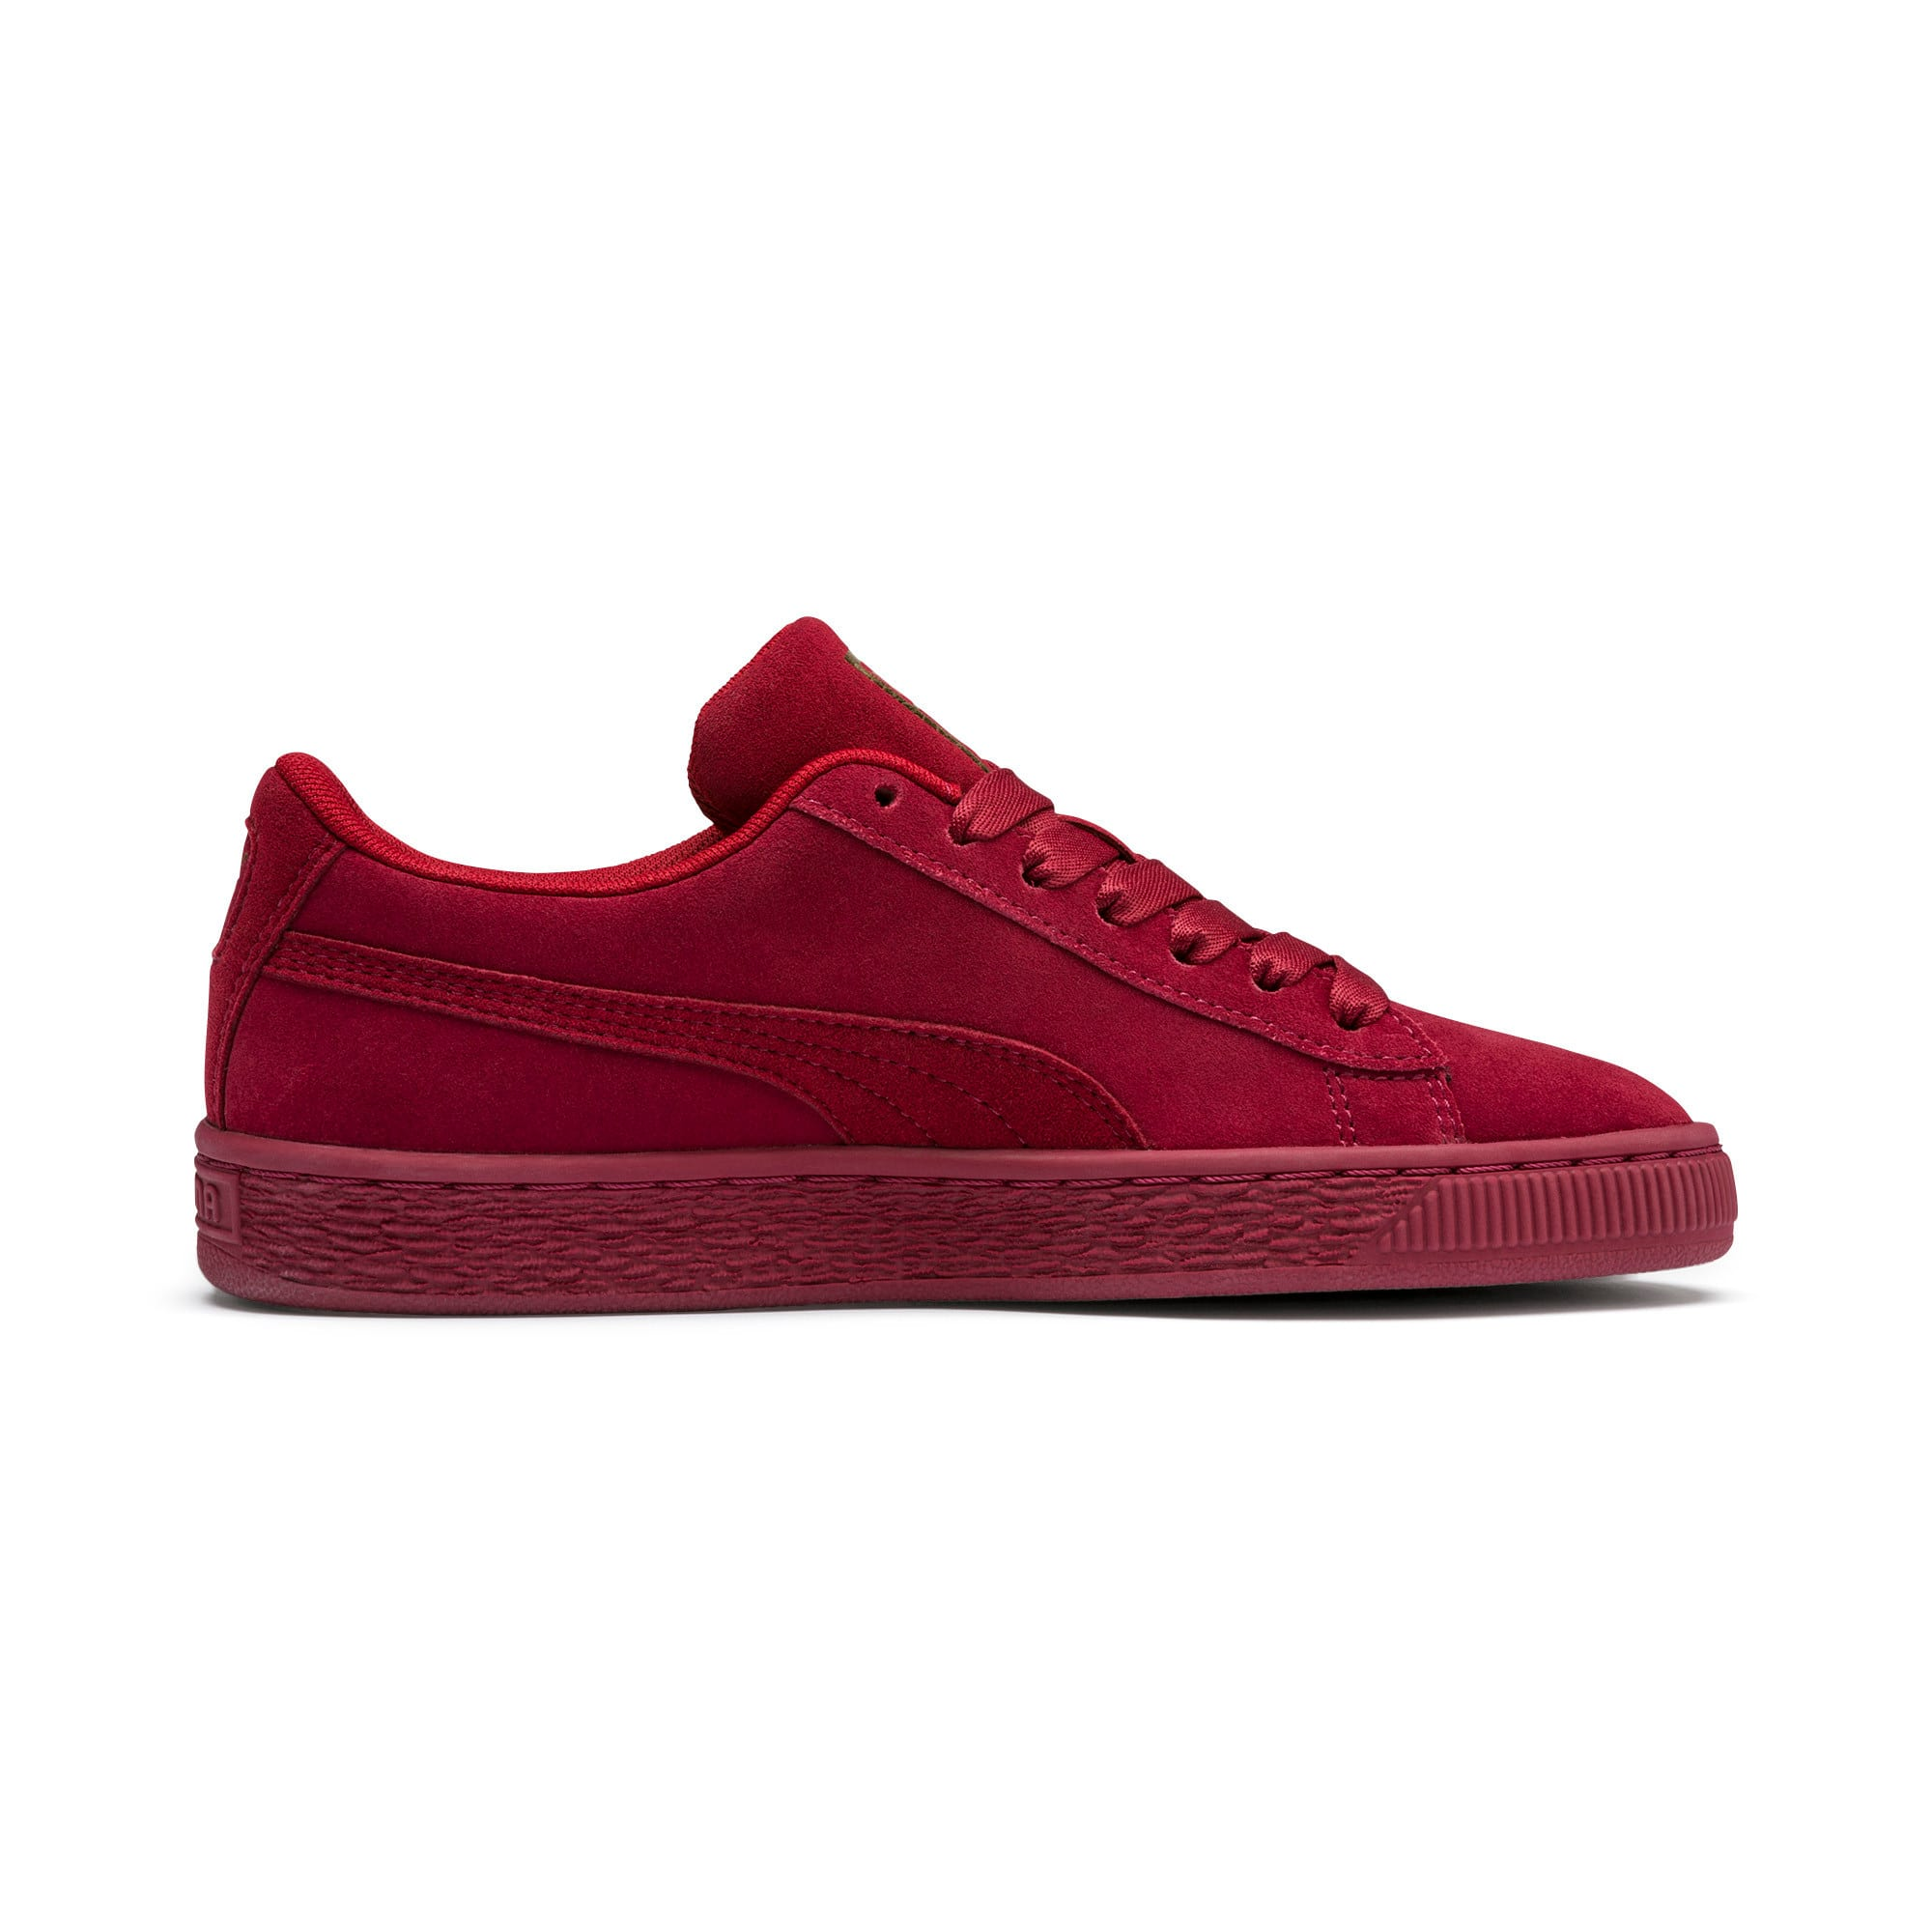 Thumbnail 5 of Sesame Street 50 Suede Statement Youth Trainers, Rhubarb-Puma White, medium